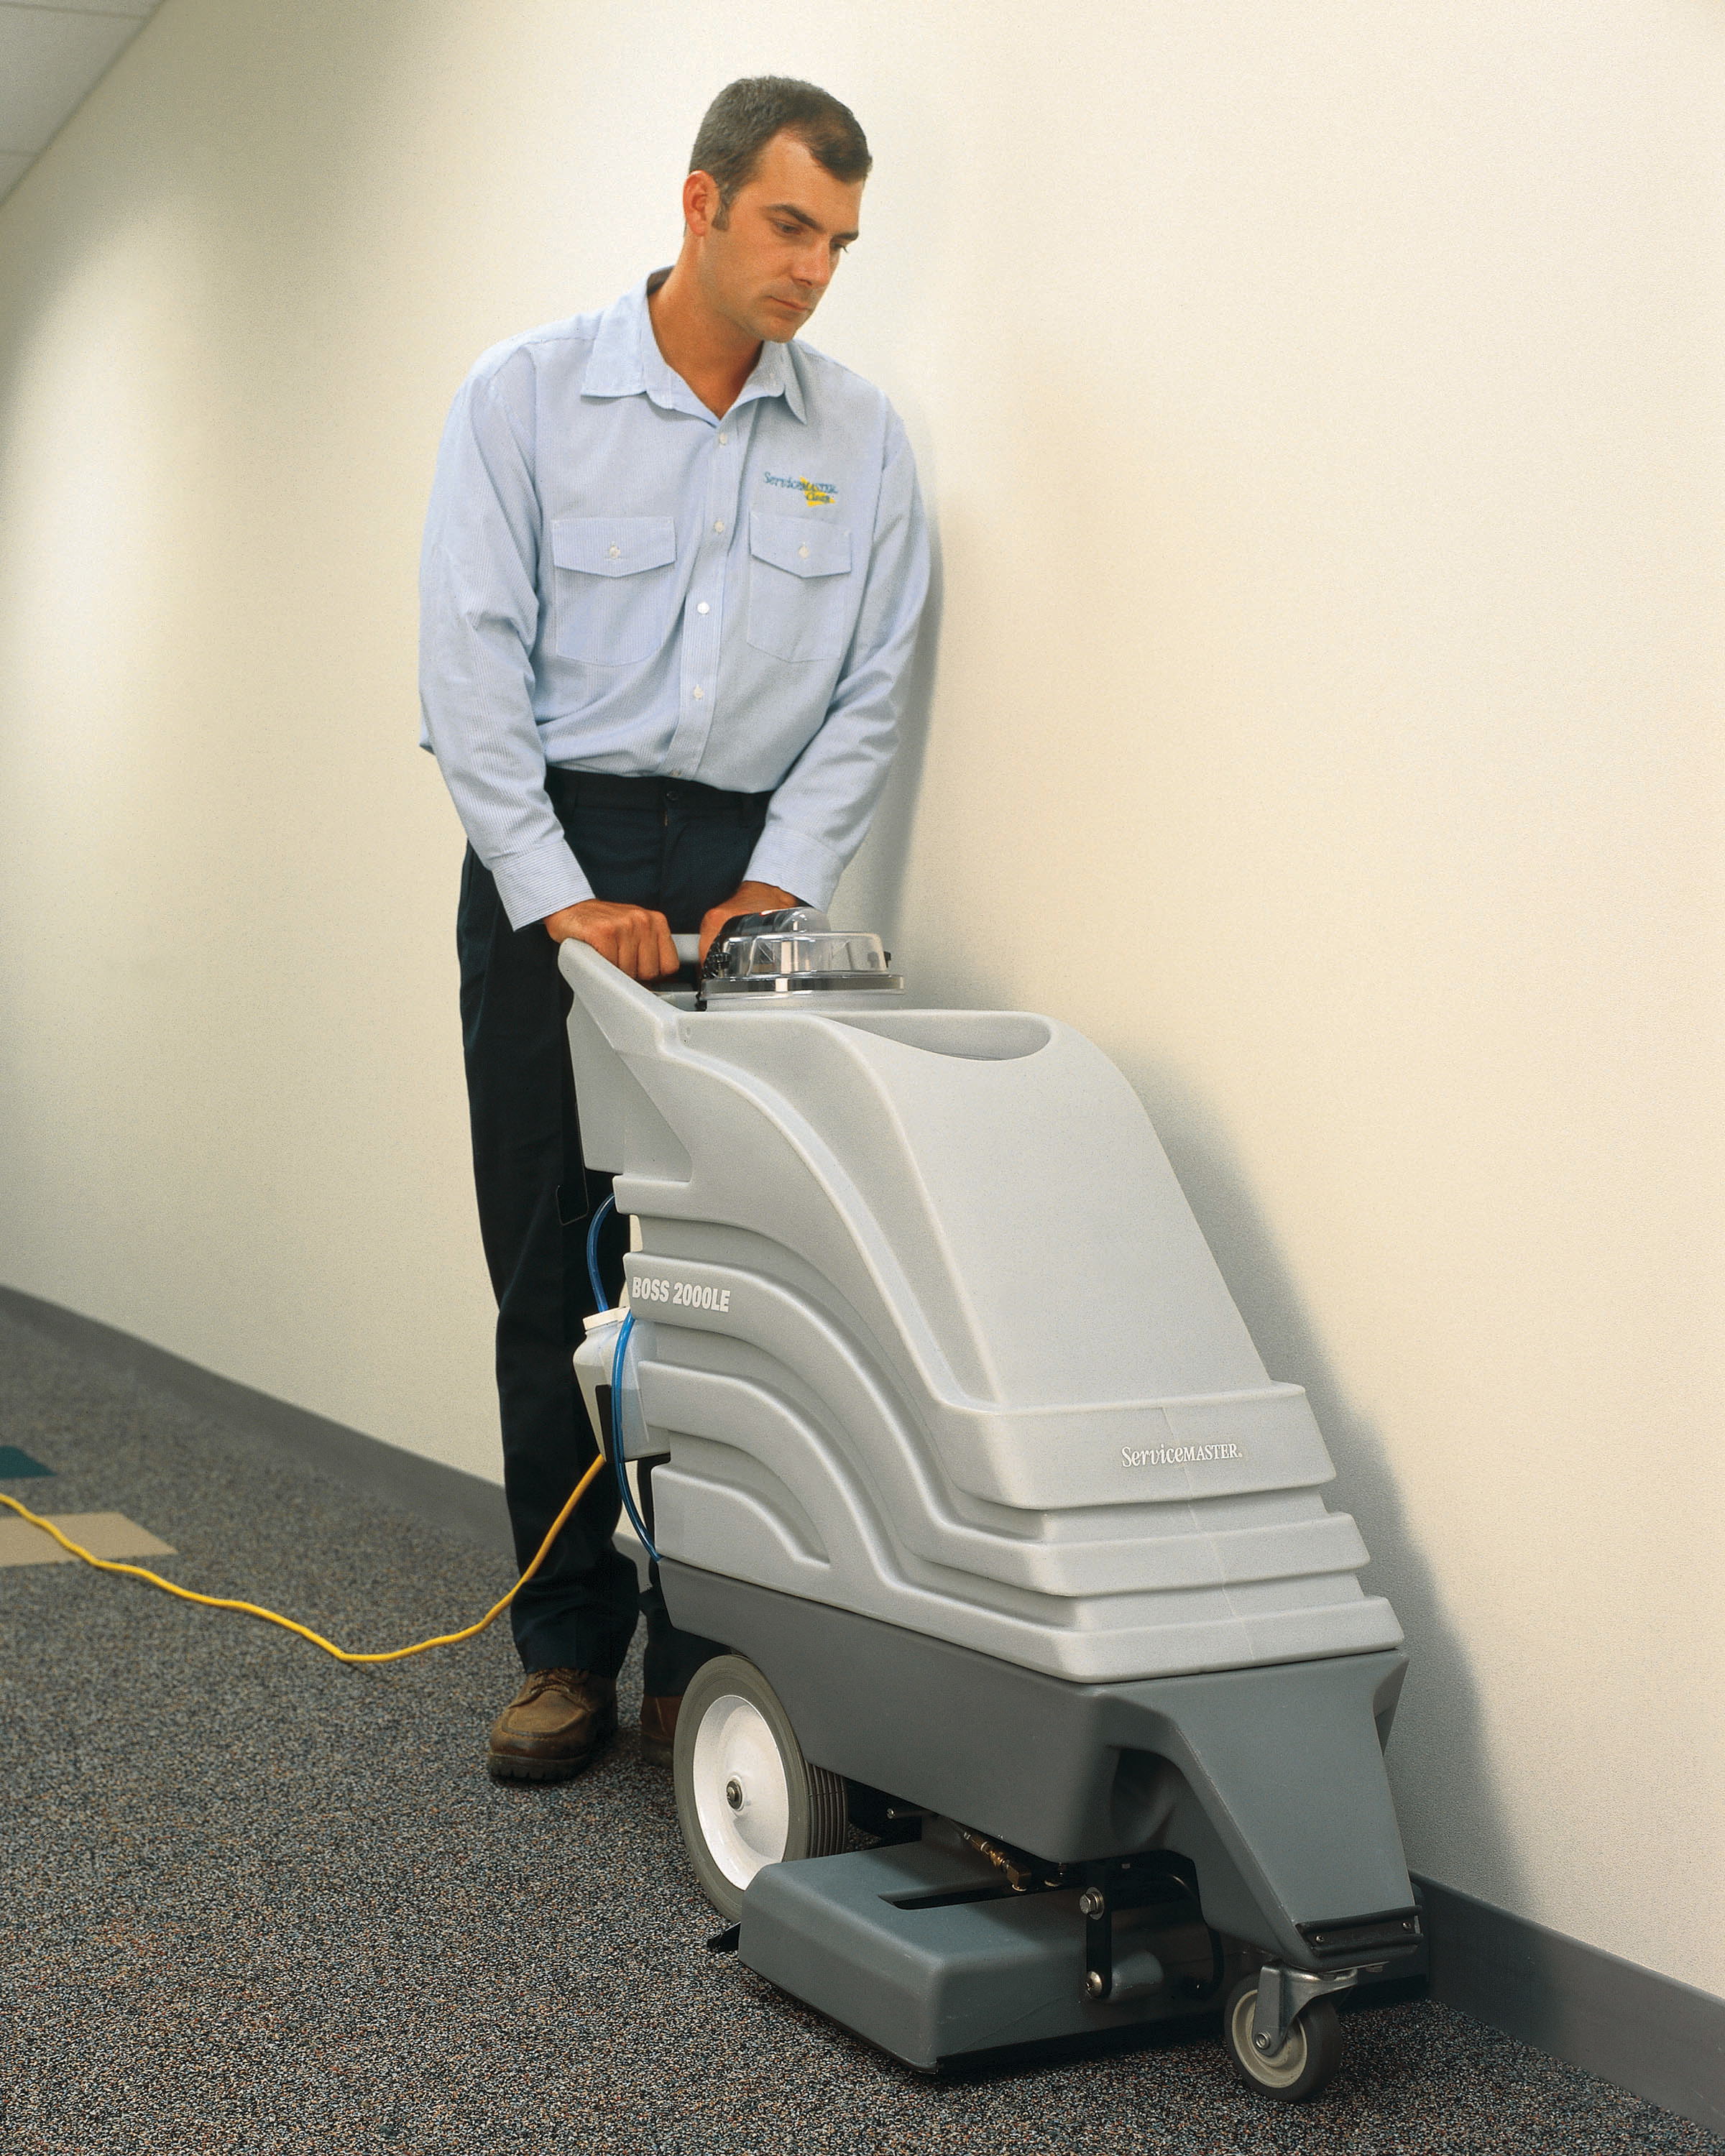 ServiceMaster Janitorial by Bustos image 5